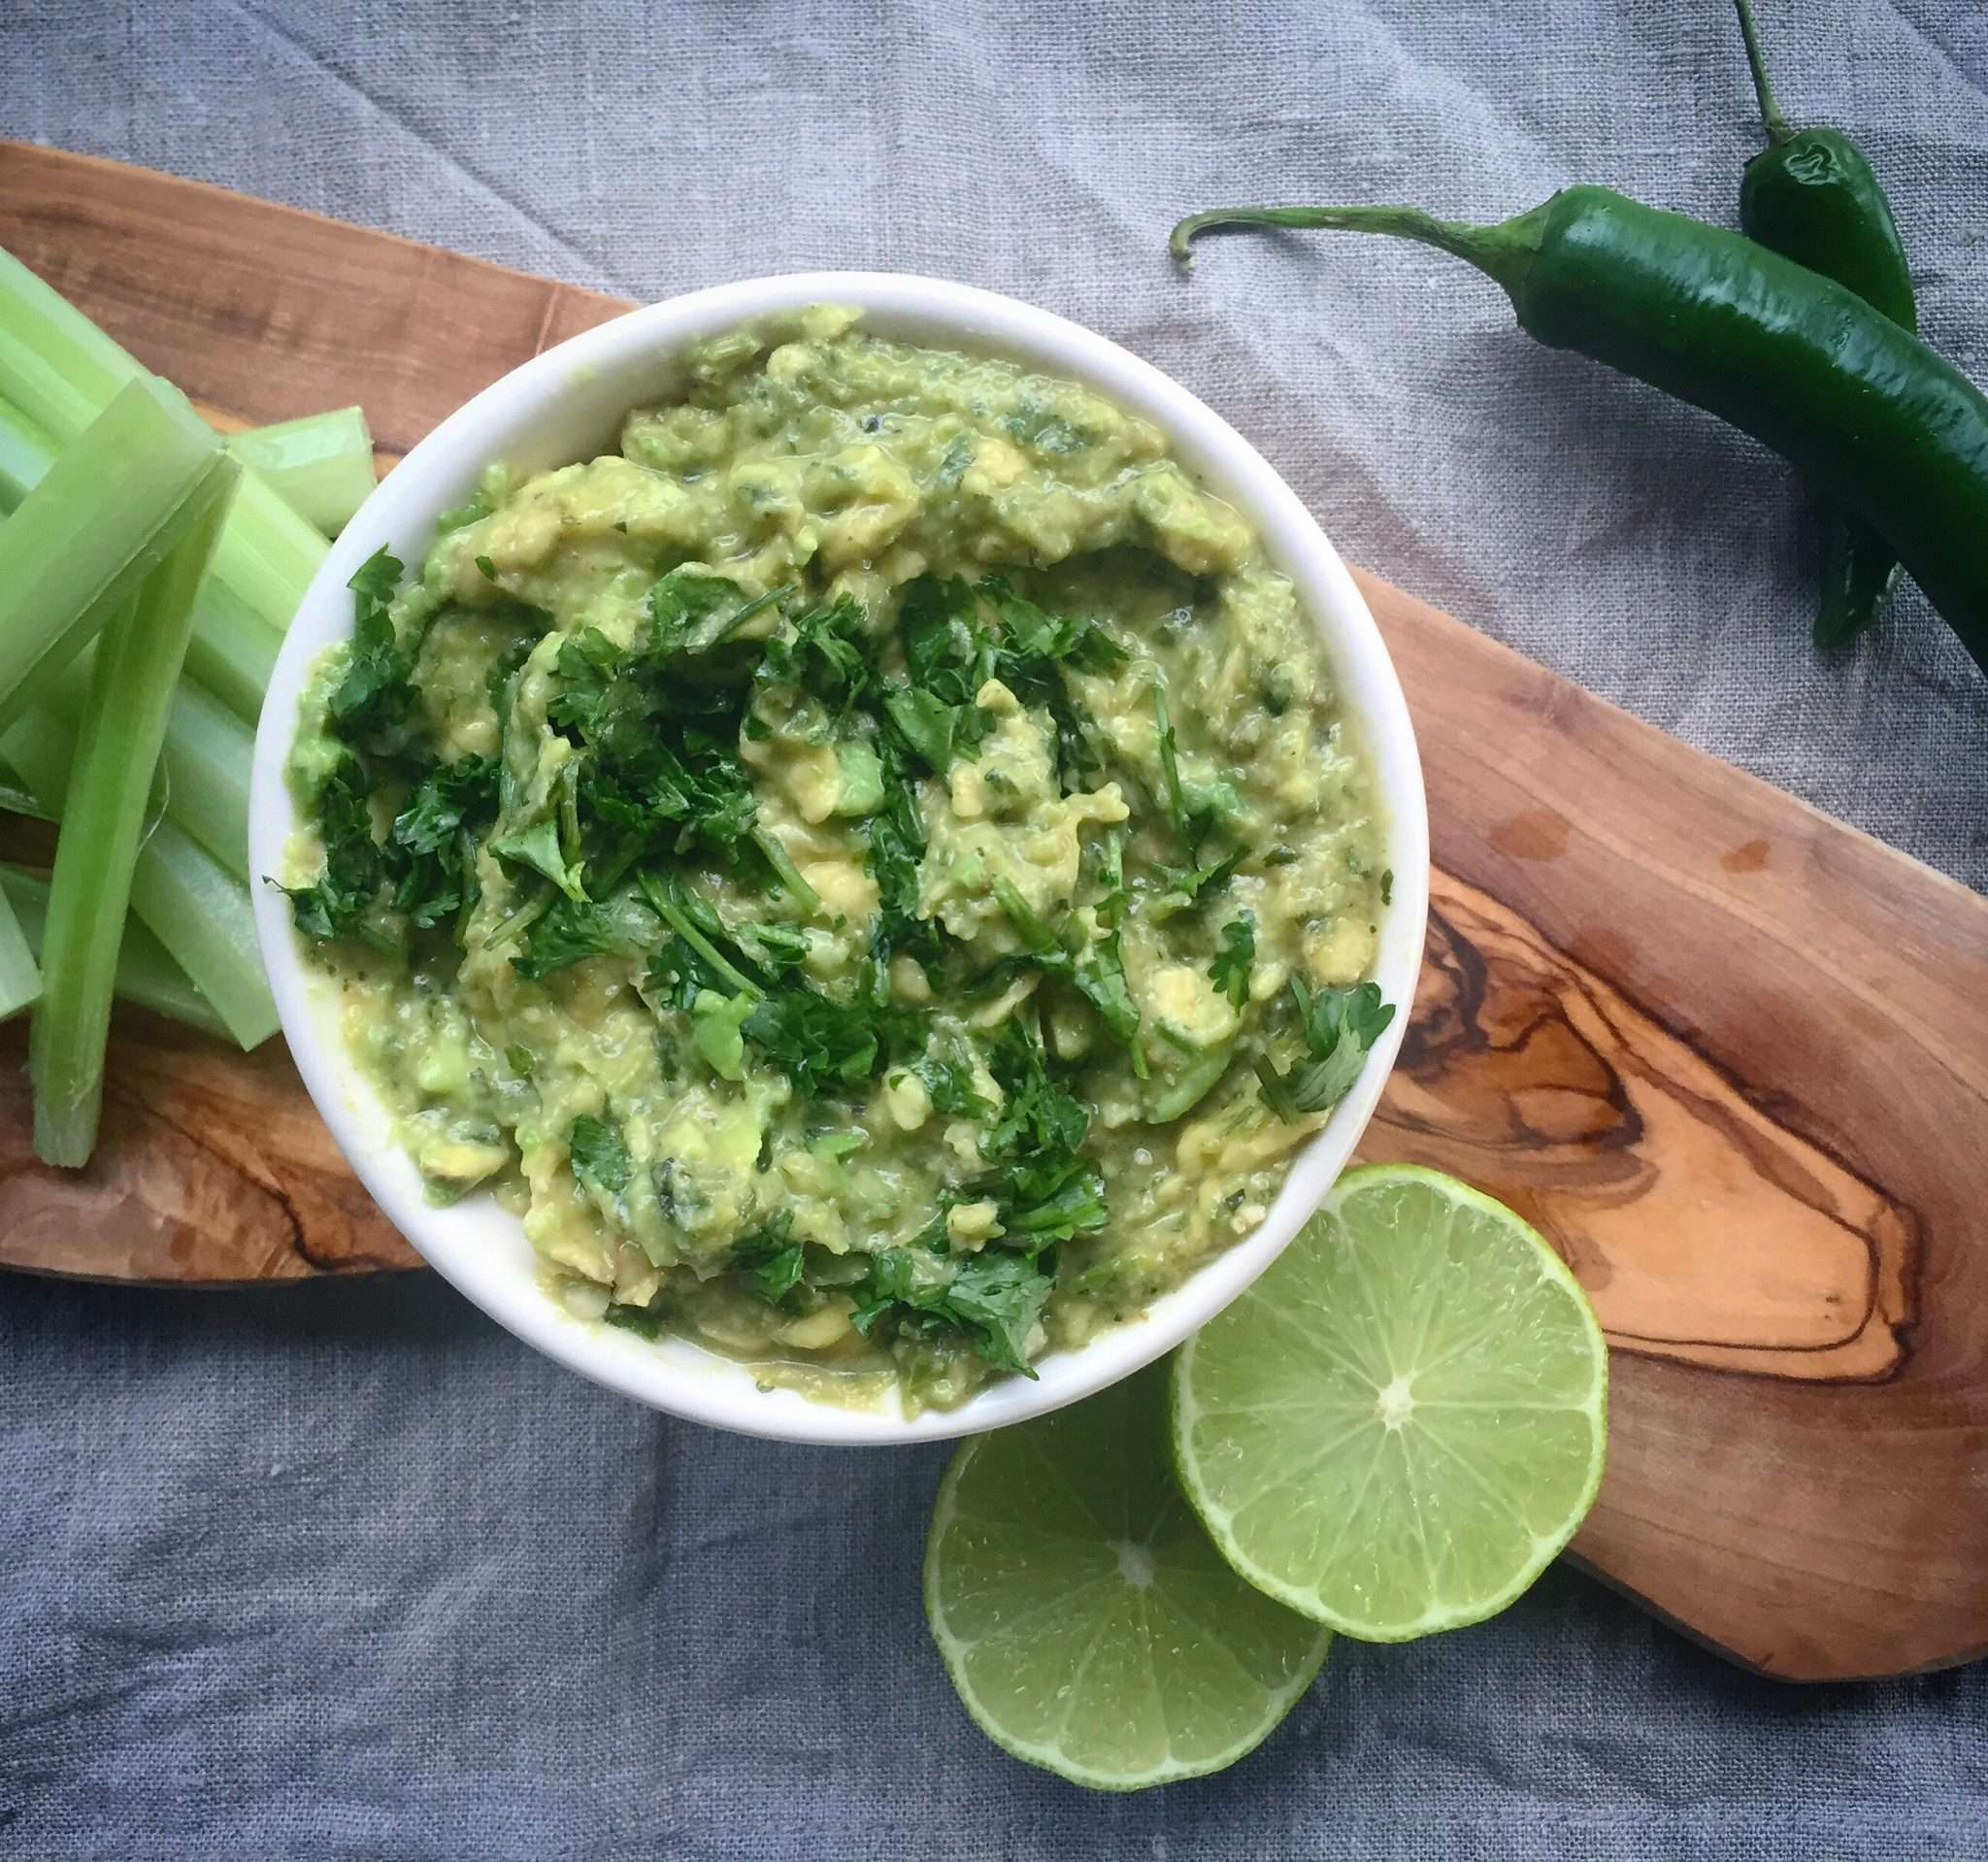 Thermie Green Avocado Dip